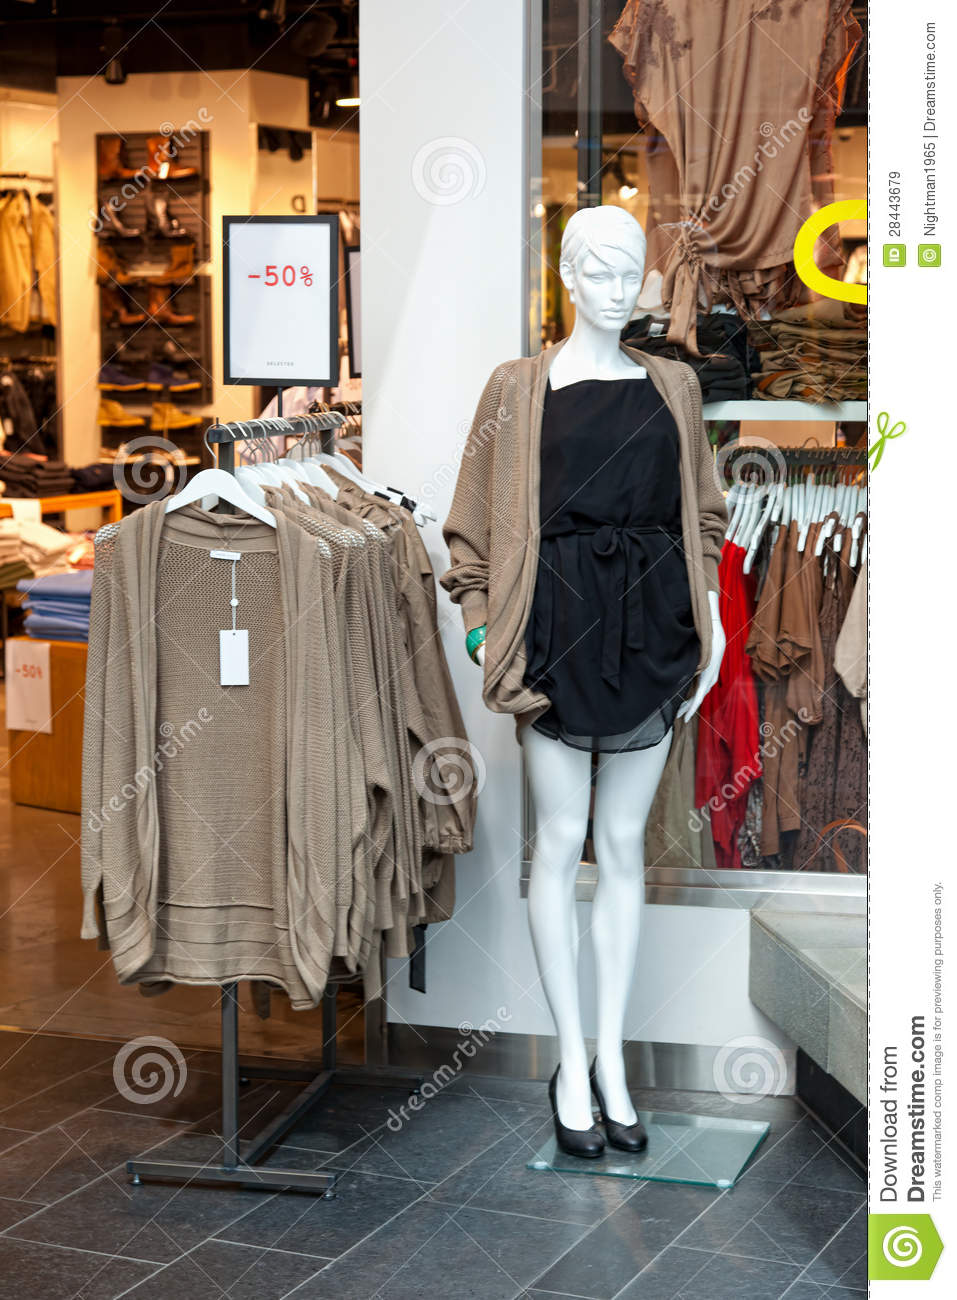 Fashion Clothing Express Store Stores Credit Cards